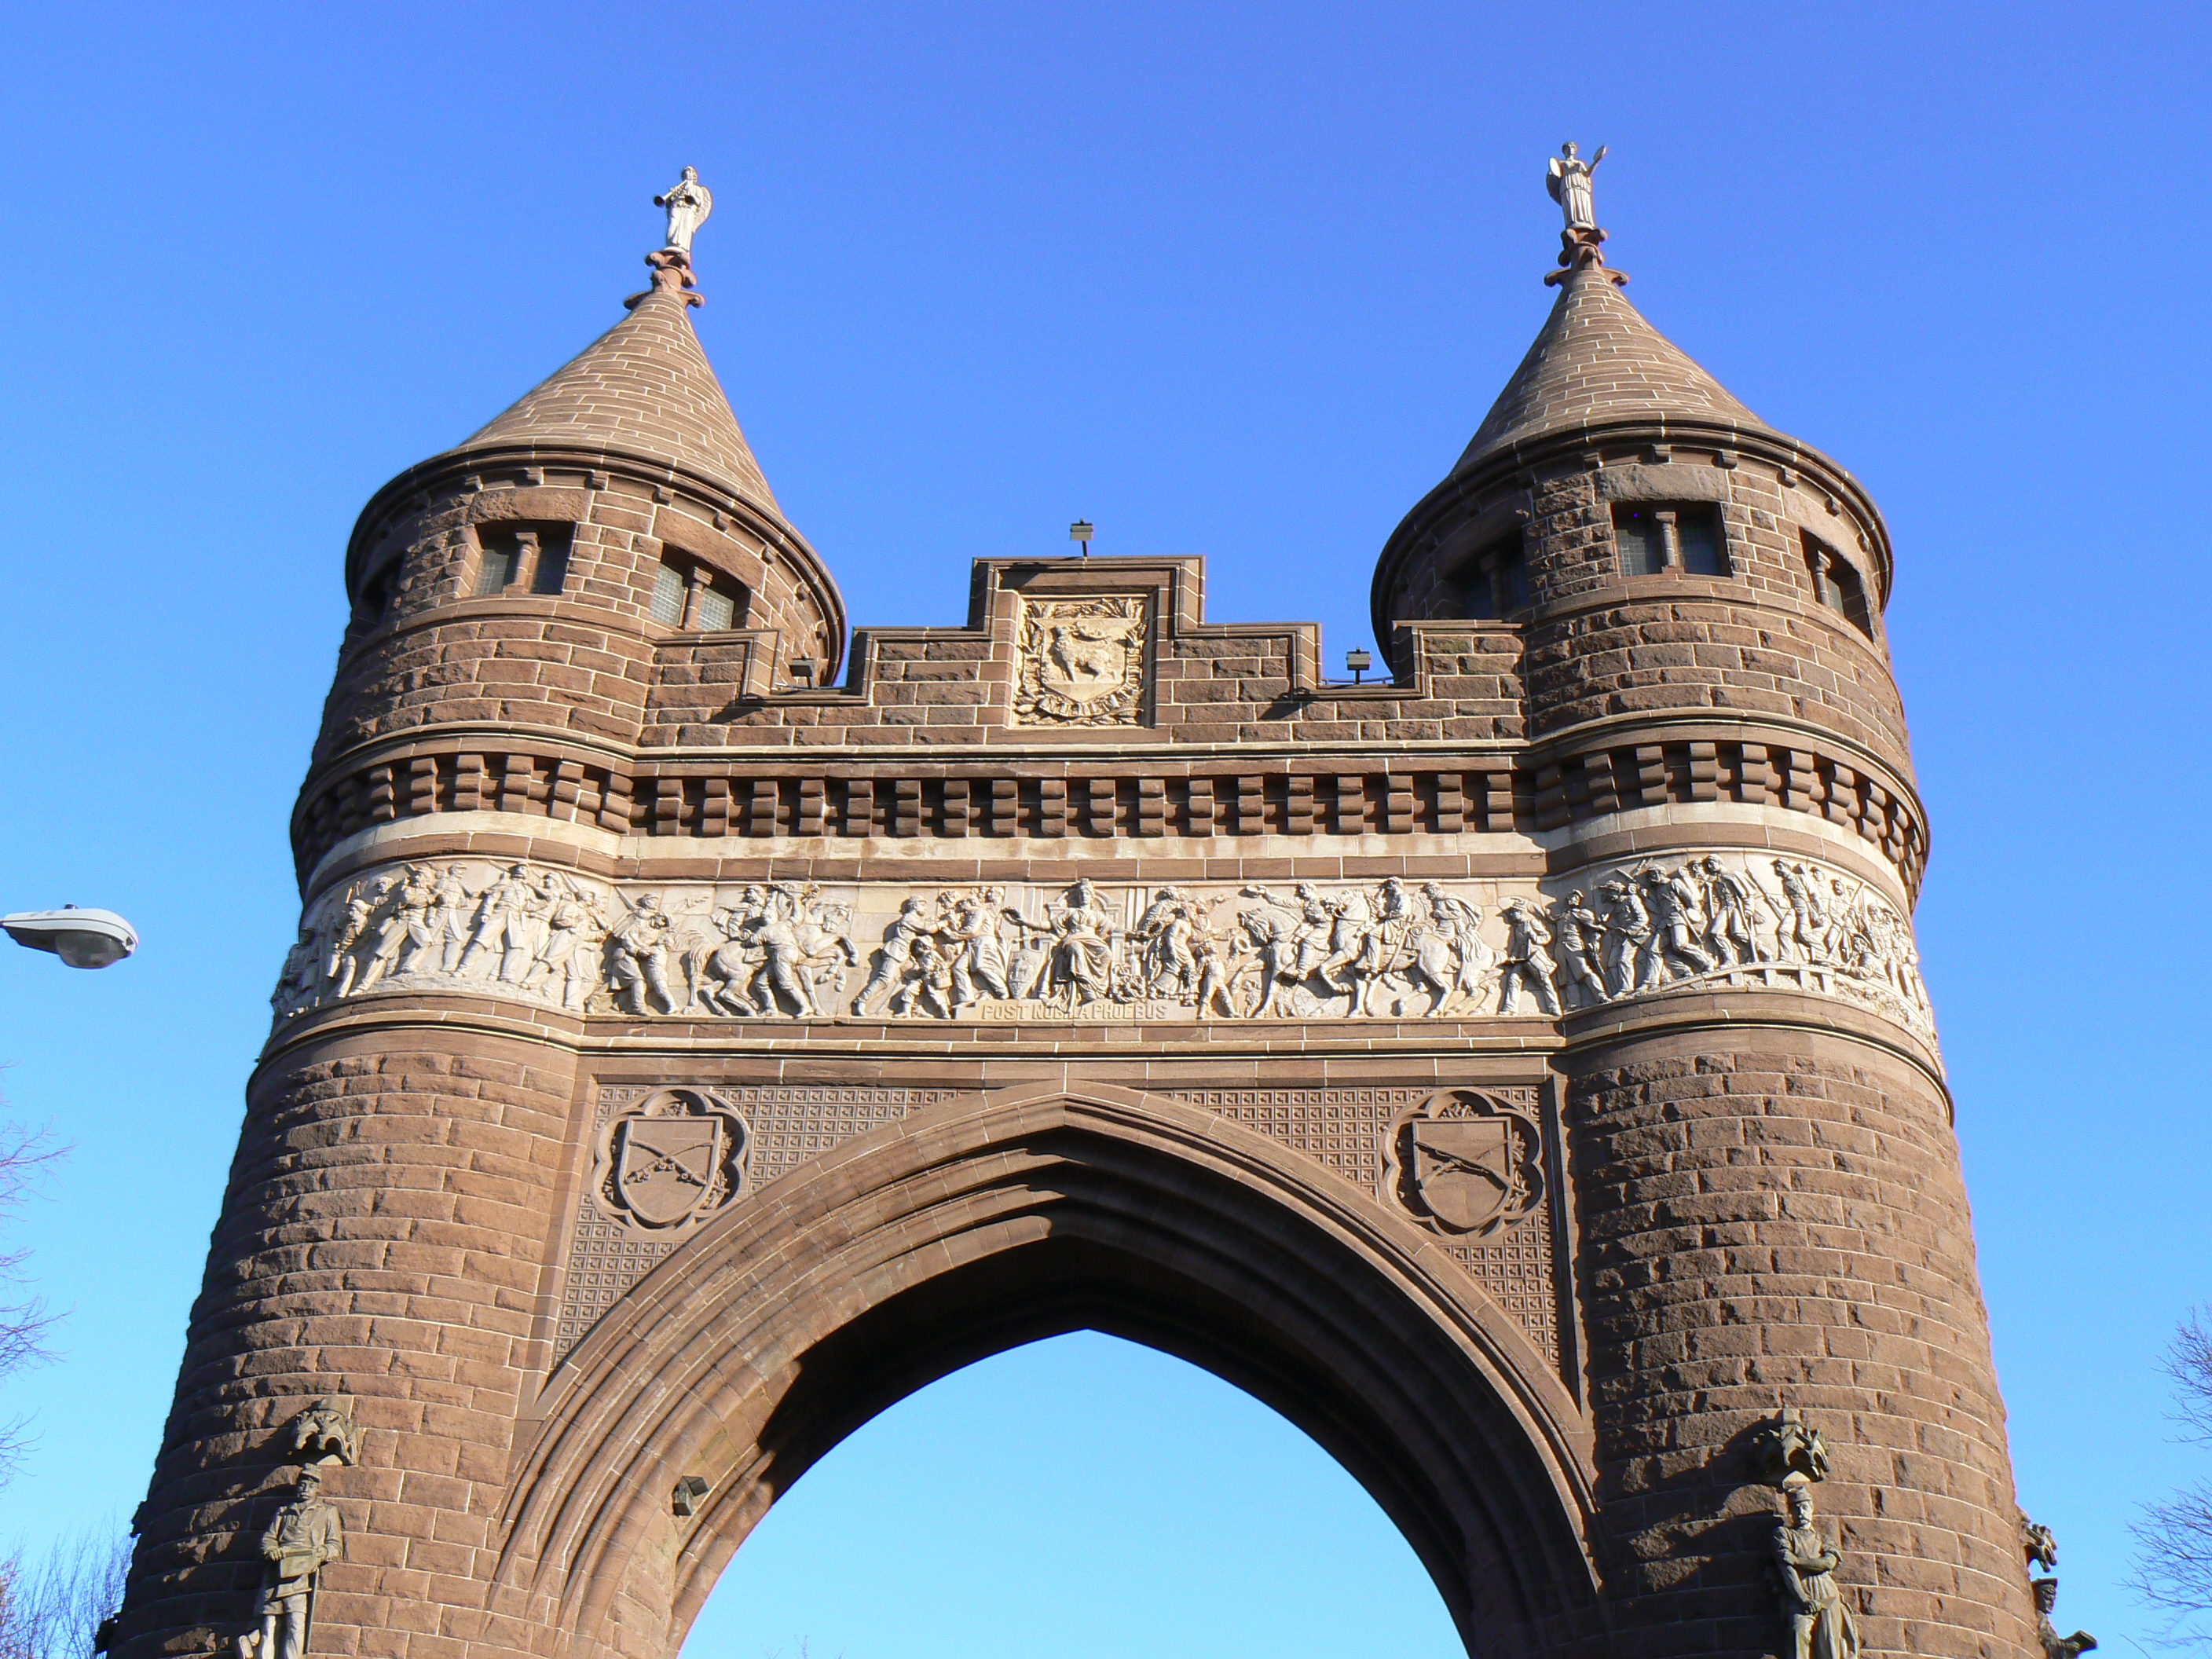 Decorative elements on the South side of the arch honoring the infantry and the cavalry.